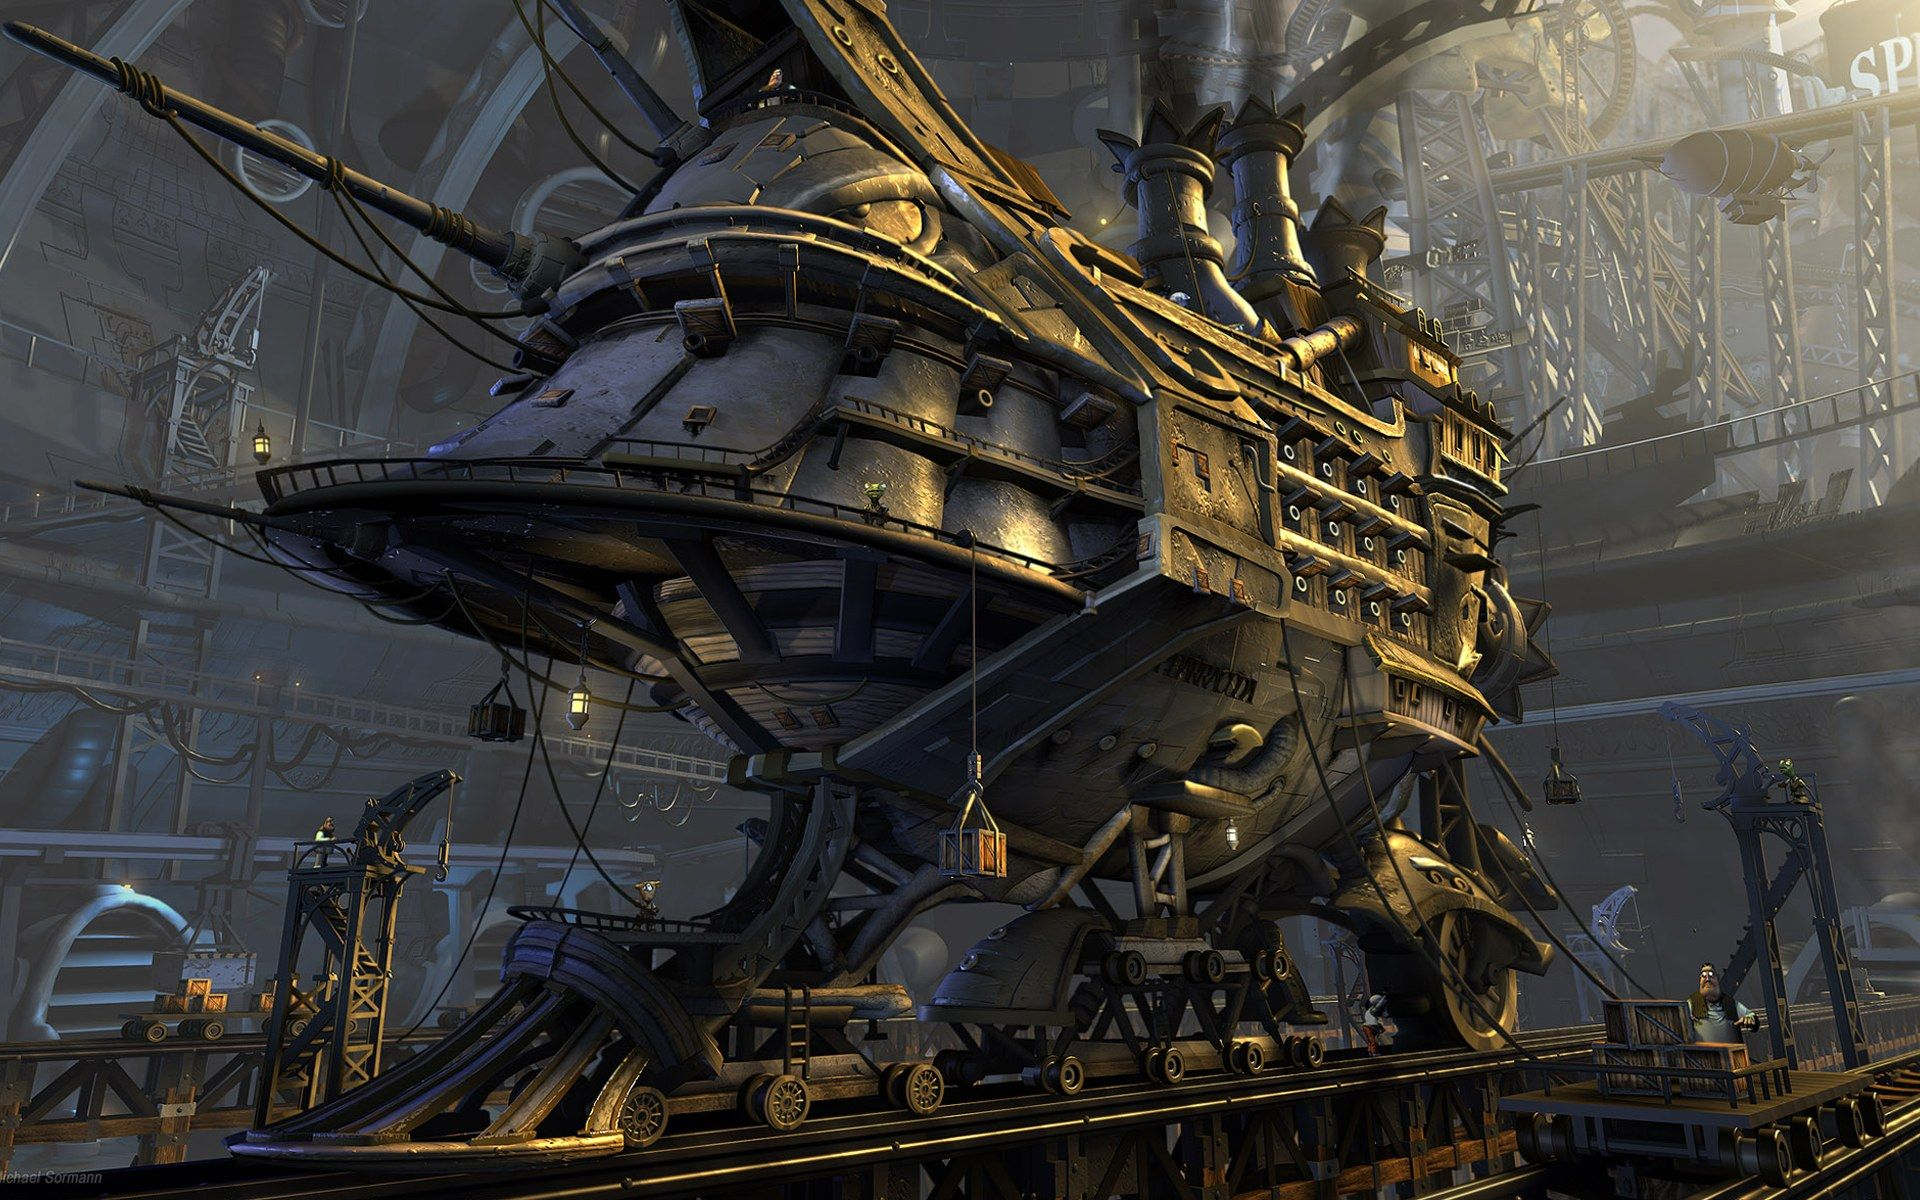 30 cool steampunk wallpapers design trends - Sci Fi Steampunk Ship Vehicle Sci Fi Wallpaper